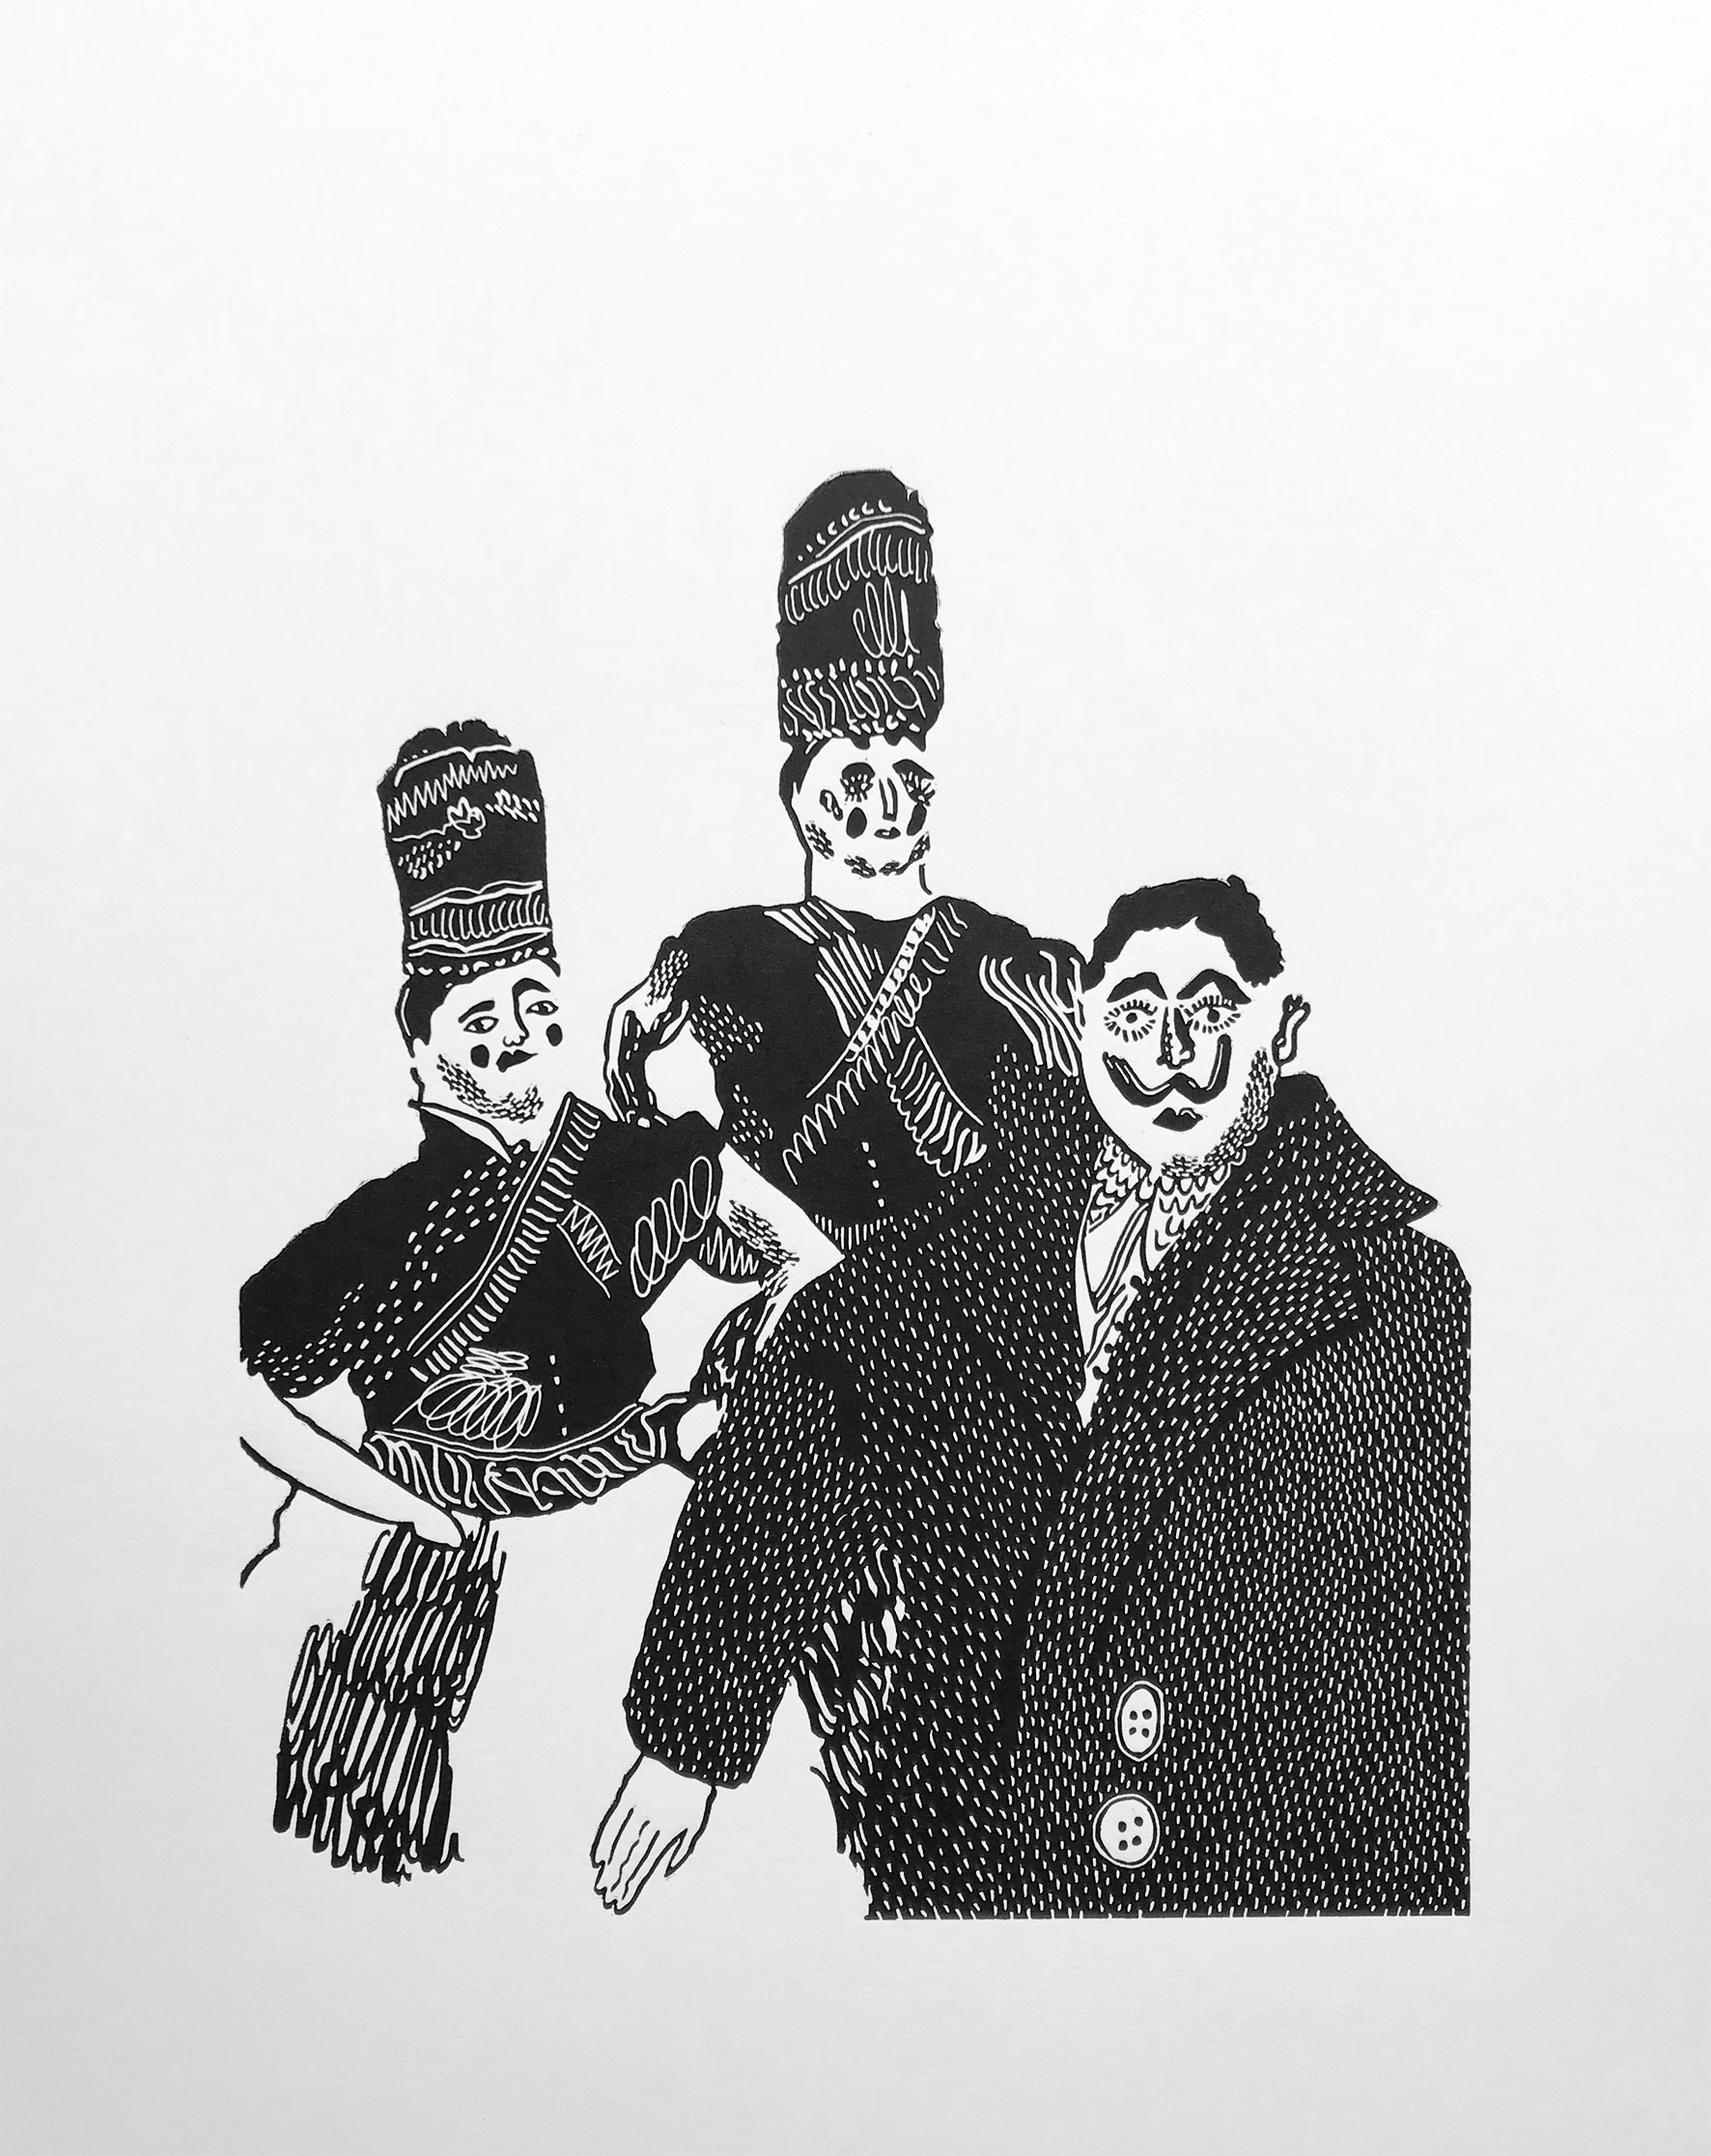 """<span class=""""link fancybox-details-link""""><a href=""""/exhibitions/17/works/image_standalone701/"""">View Detail Page</a></span><p><strong>Ben Hendy</strong></p><p>Portuguese Puppets</p><p>linocut, ed of 8</p><p>26 x 34cm</p><p>£180 framed</p><p>£90 unframed</p>"""